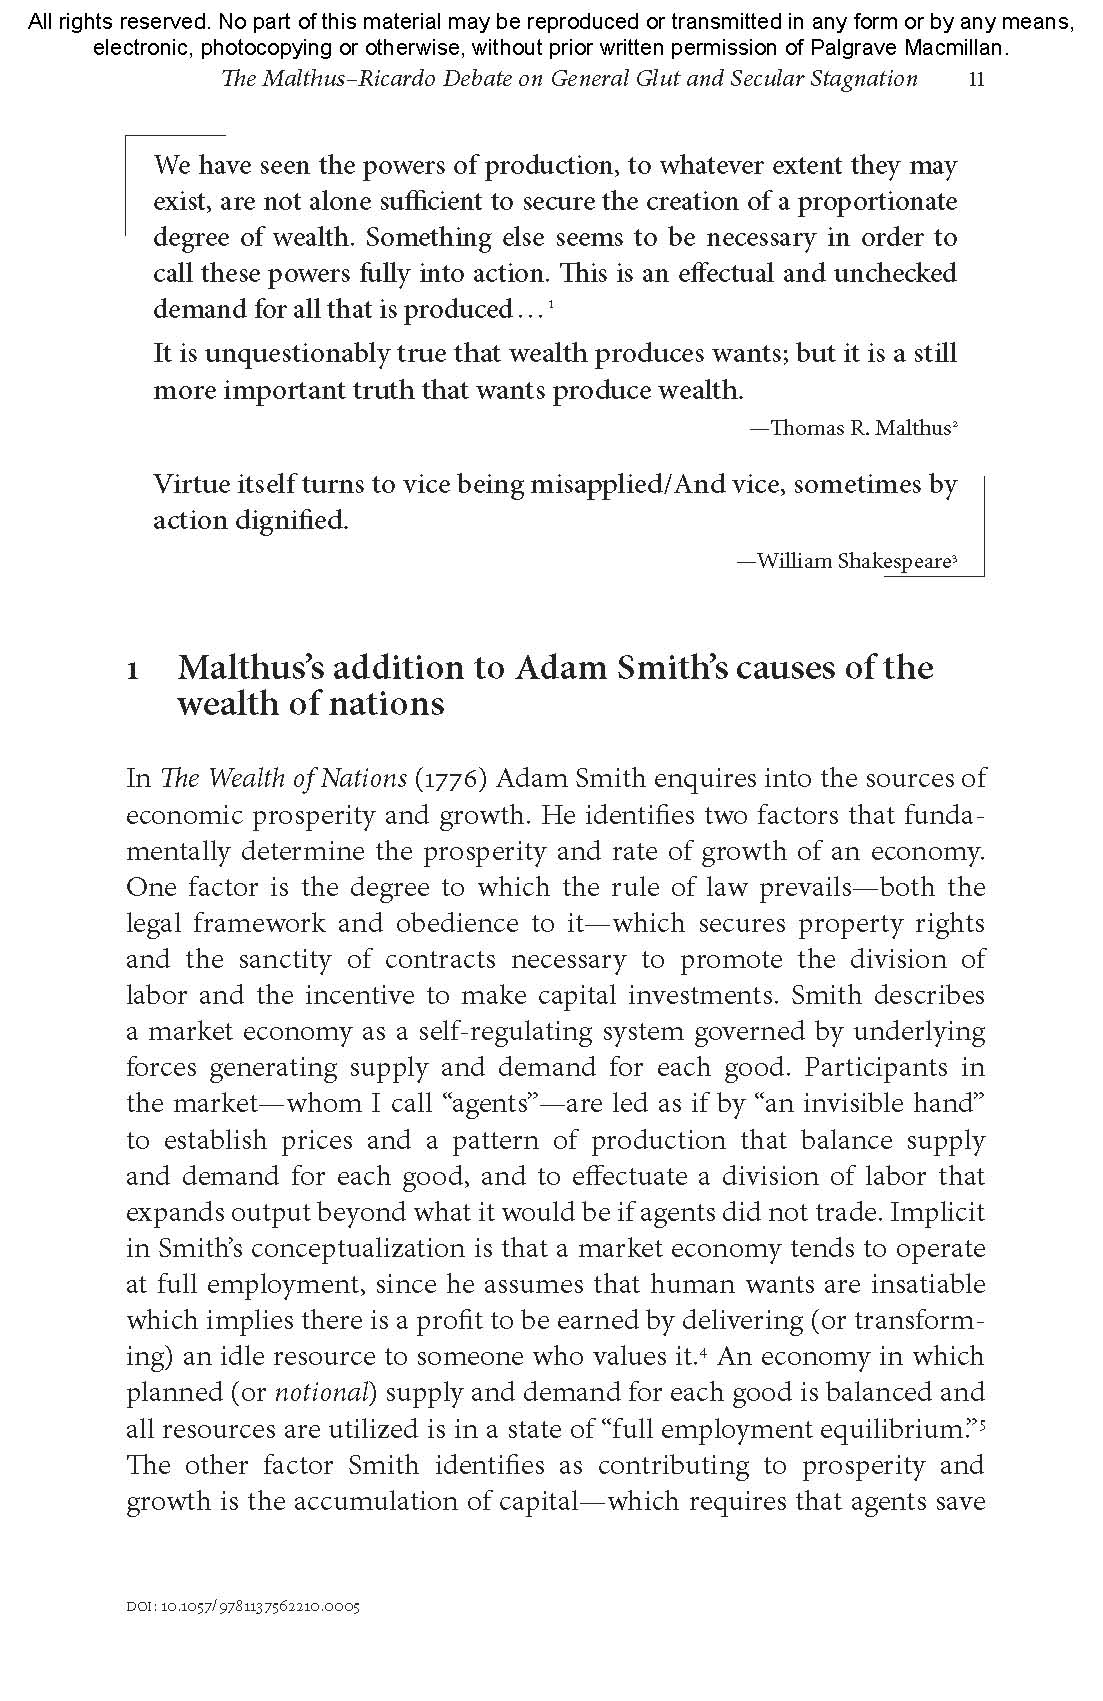 Pages from Accumulation and Secular Stagnation - pdf published book-2_Page_17.jpg